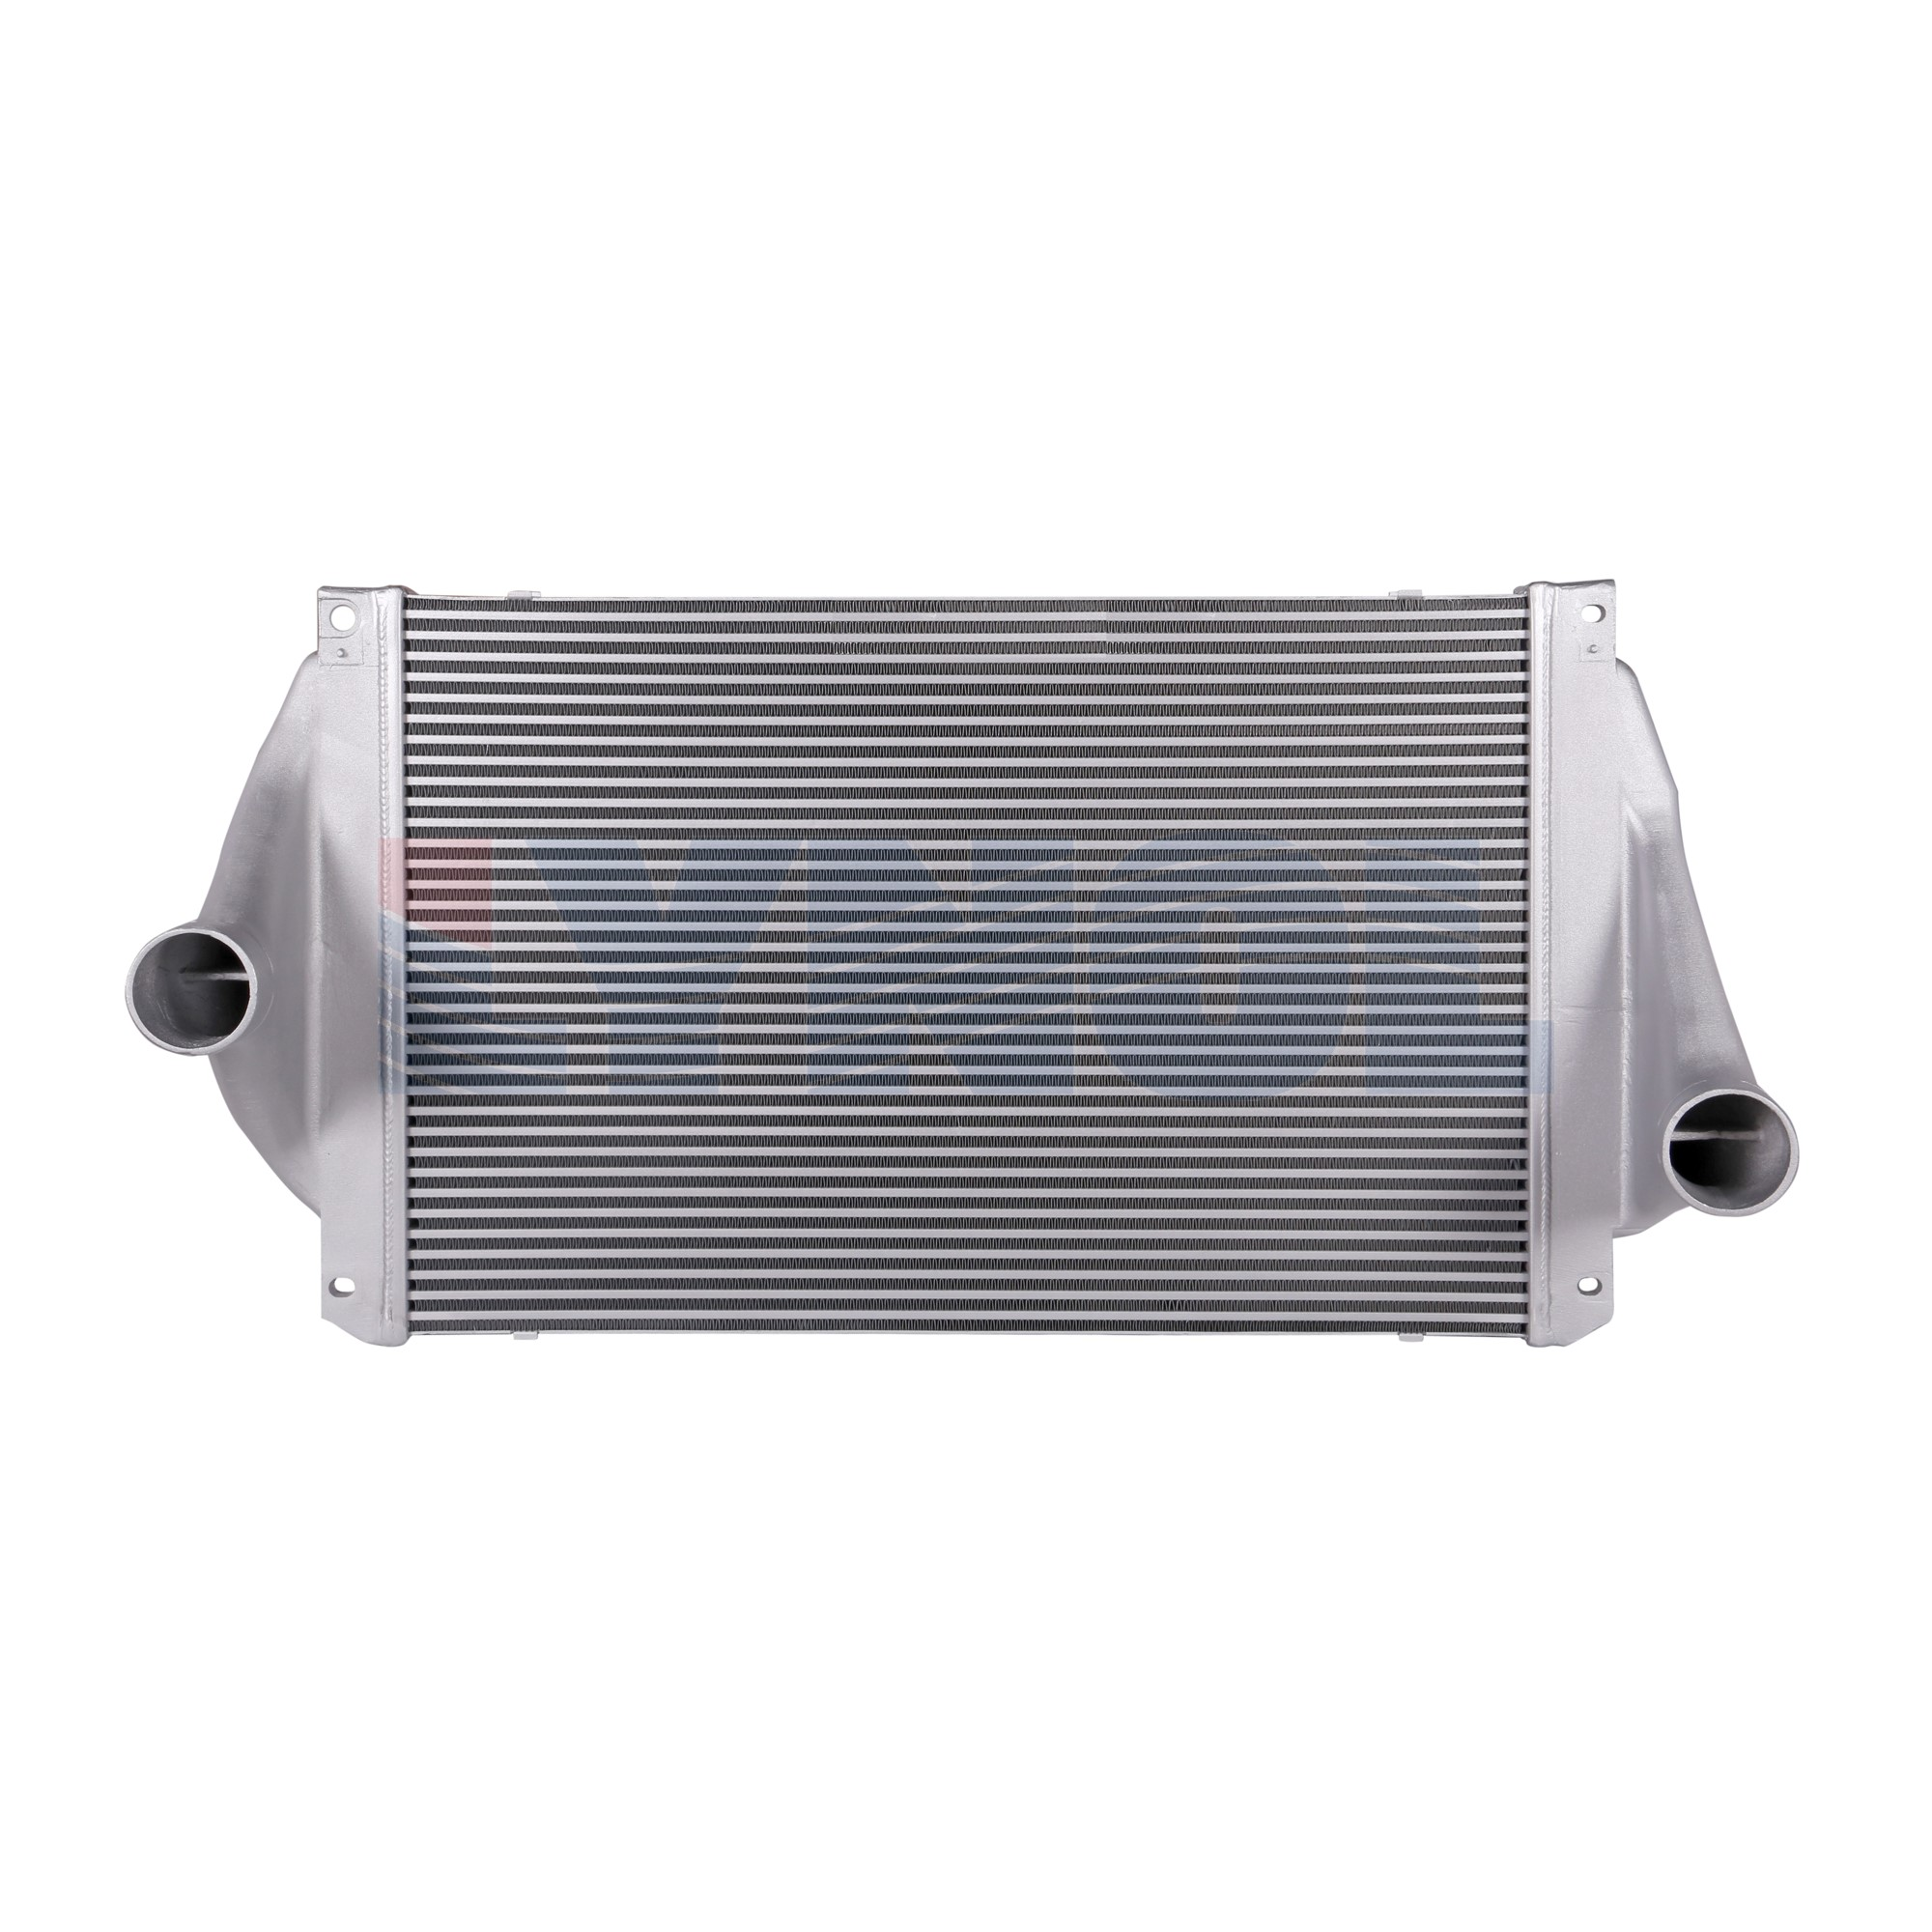 2400-019 - Freightliner / Western Star Charge Air Cooler